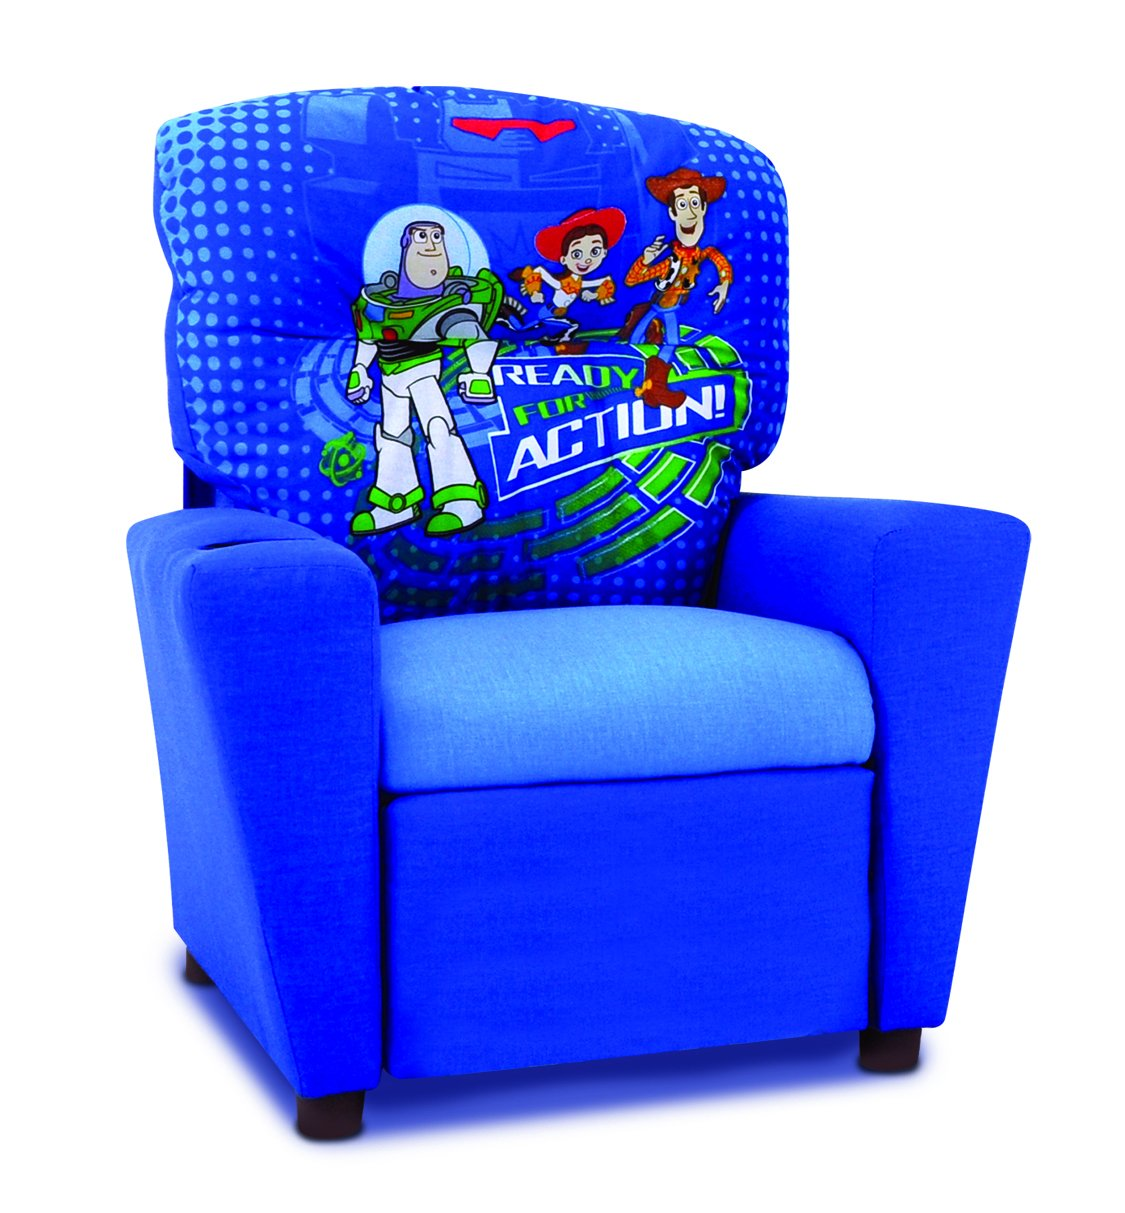 Toy Story 3 Kids Recliner in Blue 446459 by Kidz World